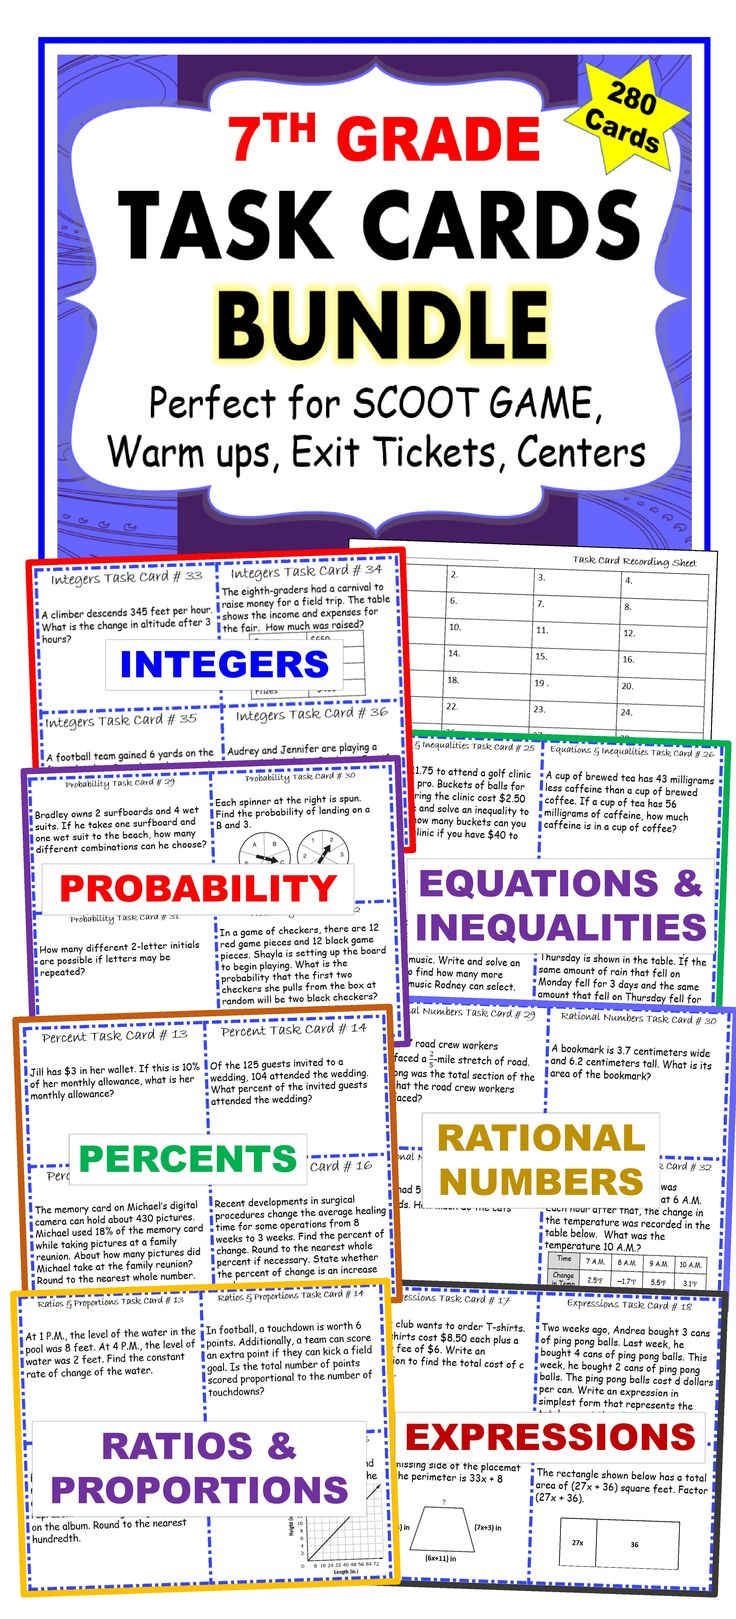 7th Grade Task Cards BUNDLE Common Core {280 Cards}. I use these task cards with my students to help them practice PROBLEMS SOLVING. This resource includes 280 task cards (7 sets/40 cards per set), student answer sheets, and answer keys. Your students will love working with these task cards. These TASK CARDS are perfect for reinforcing concepts through individual student practice, pair-share, early finishers, and assessment prep.: 7th Grade Task Cards BUNDLE Common Core {280 Cards}. I use these task cards with my students to help them practice PROBLEMS SOLVING. This resource includes 280 task cards (7 sets/40 cards per set), student answer sheets, and answer keys. Your students will love working with these task cards. These TASK CARDS are perfect for reinforcing concepts through individual student practice, pair-share, early finishers, and assessment prep.